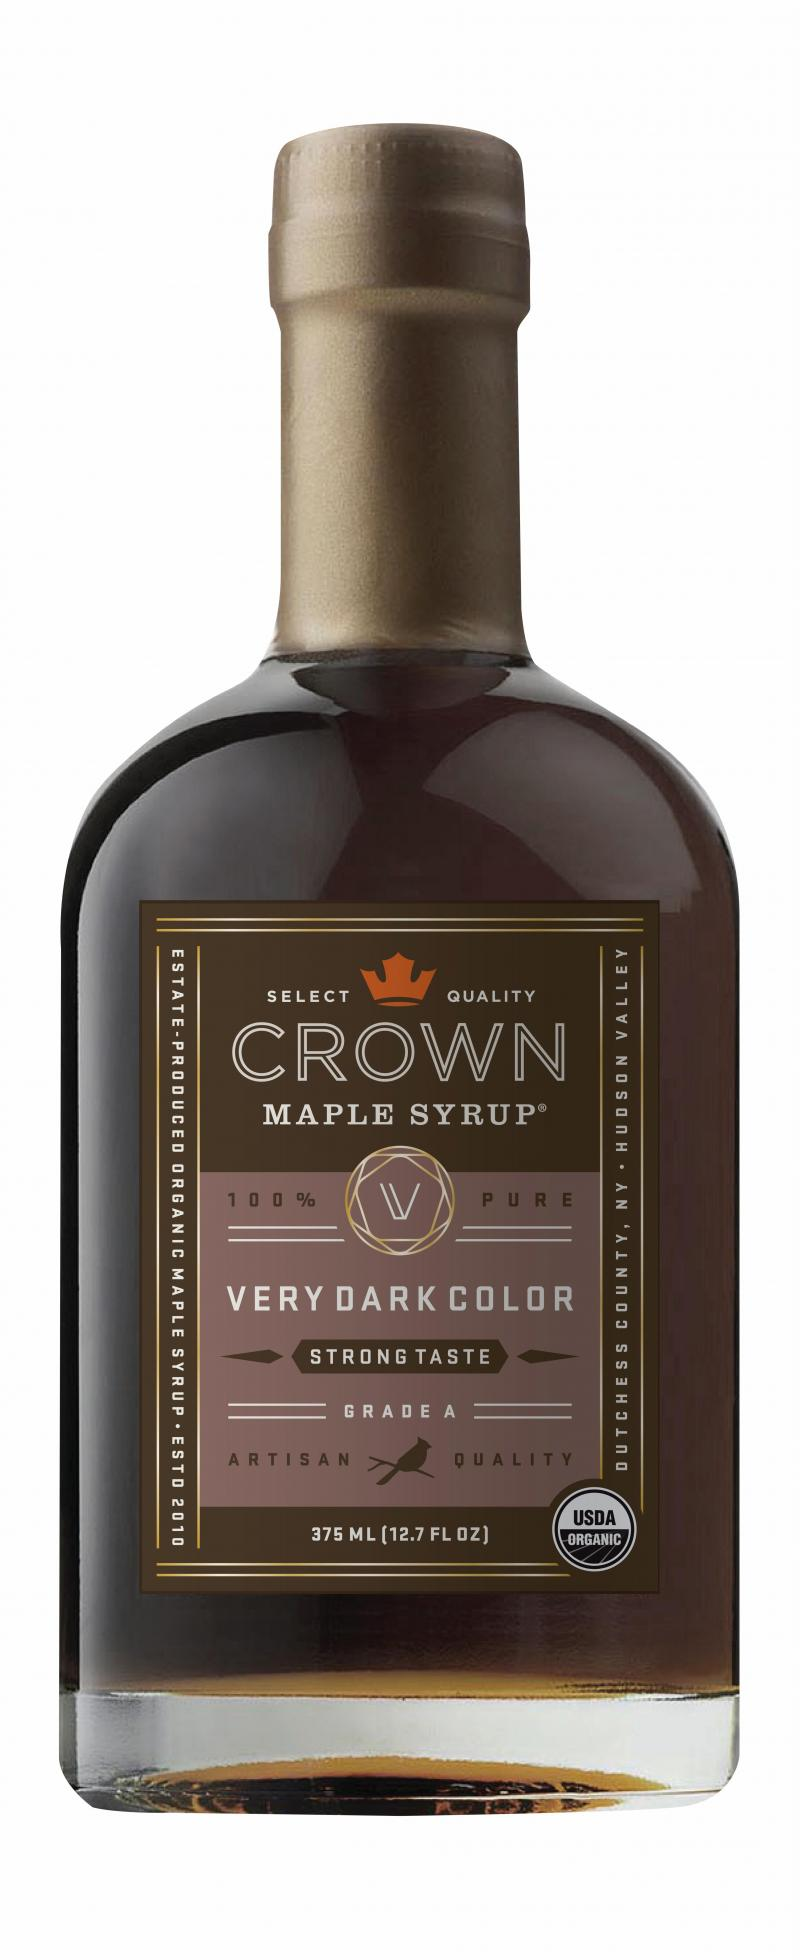 100% Pure Very Dark Color